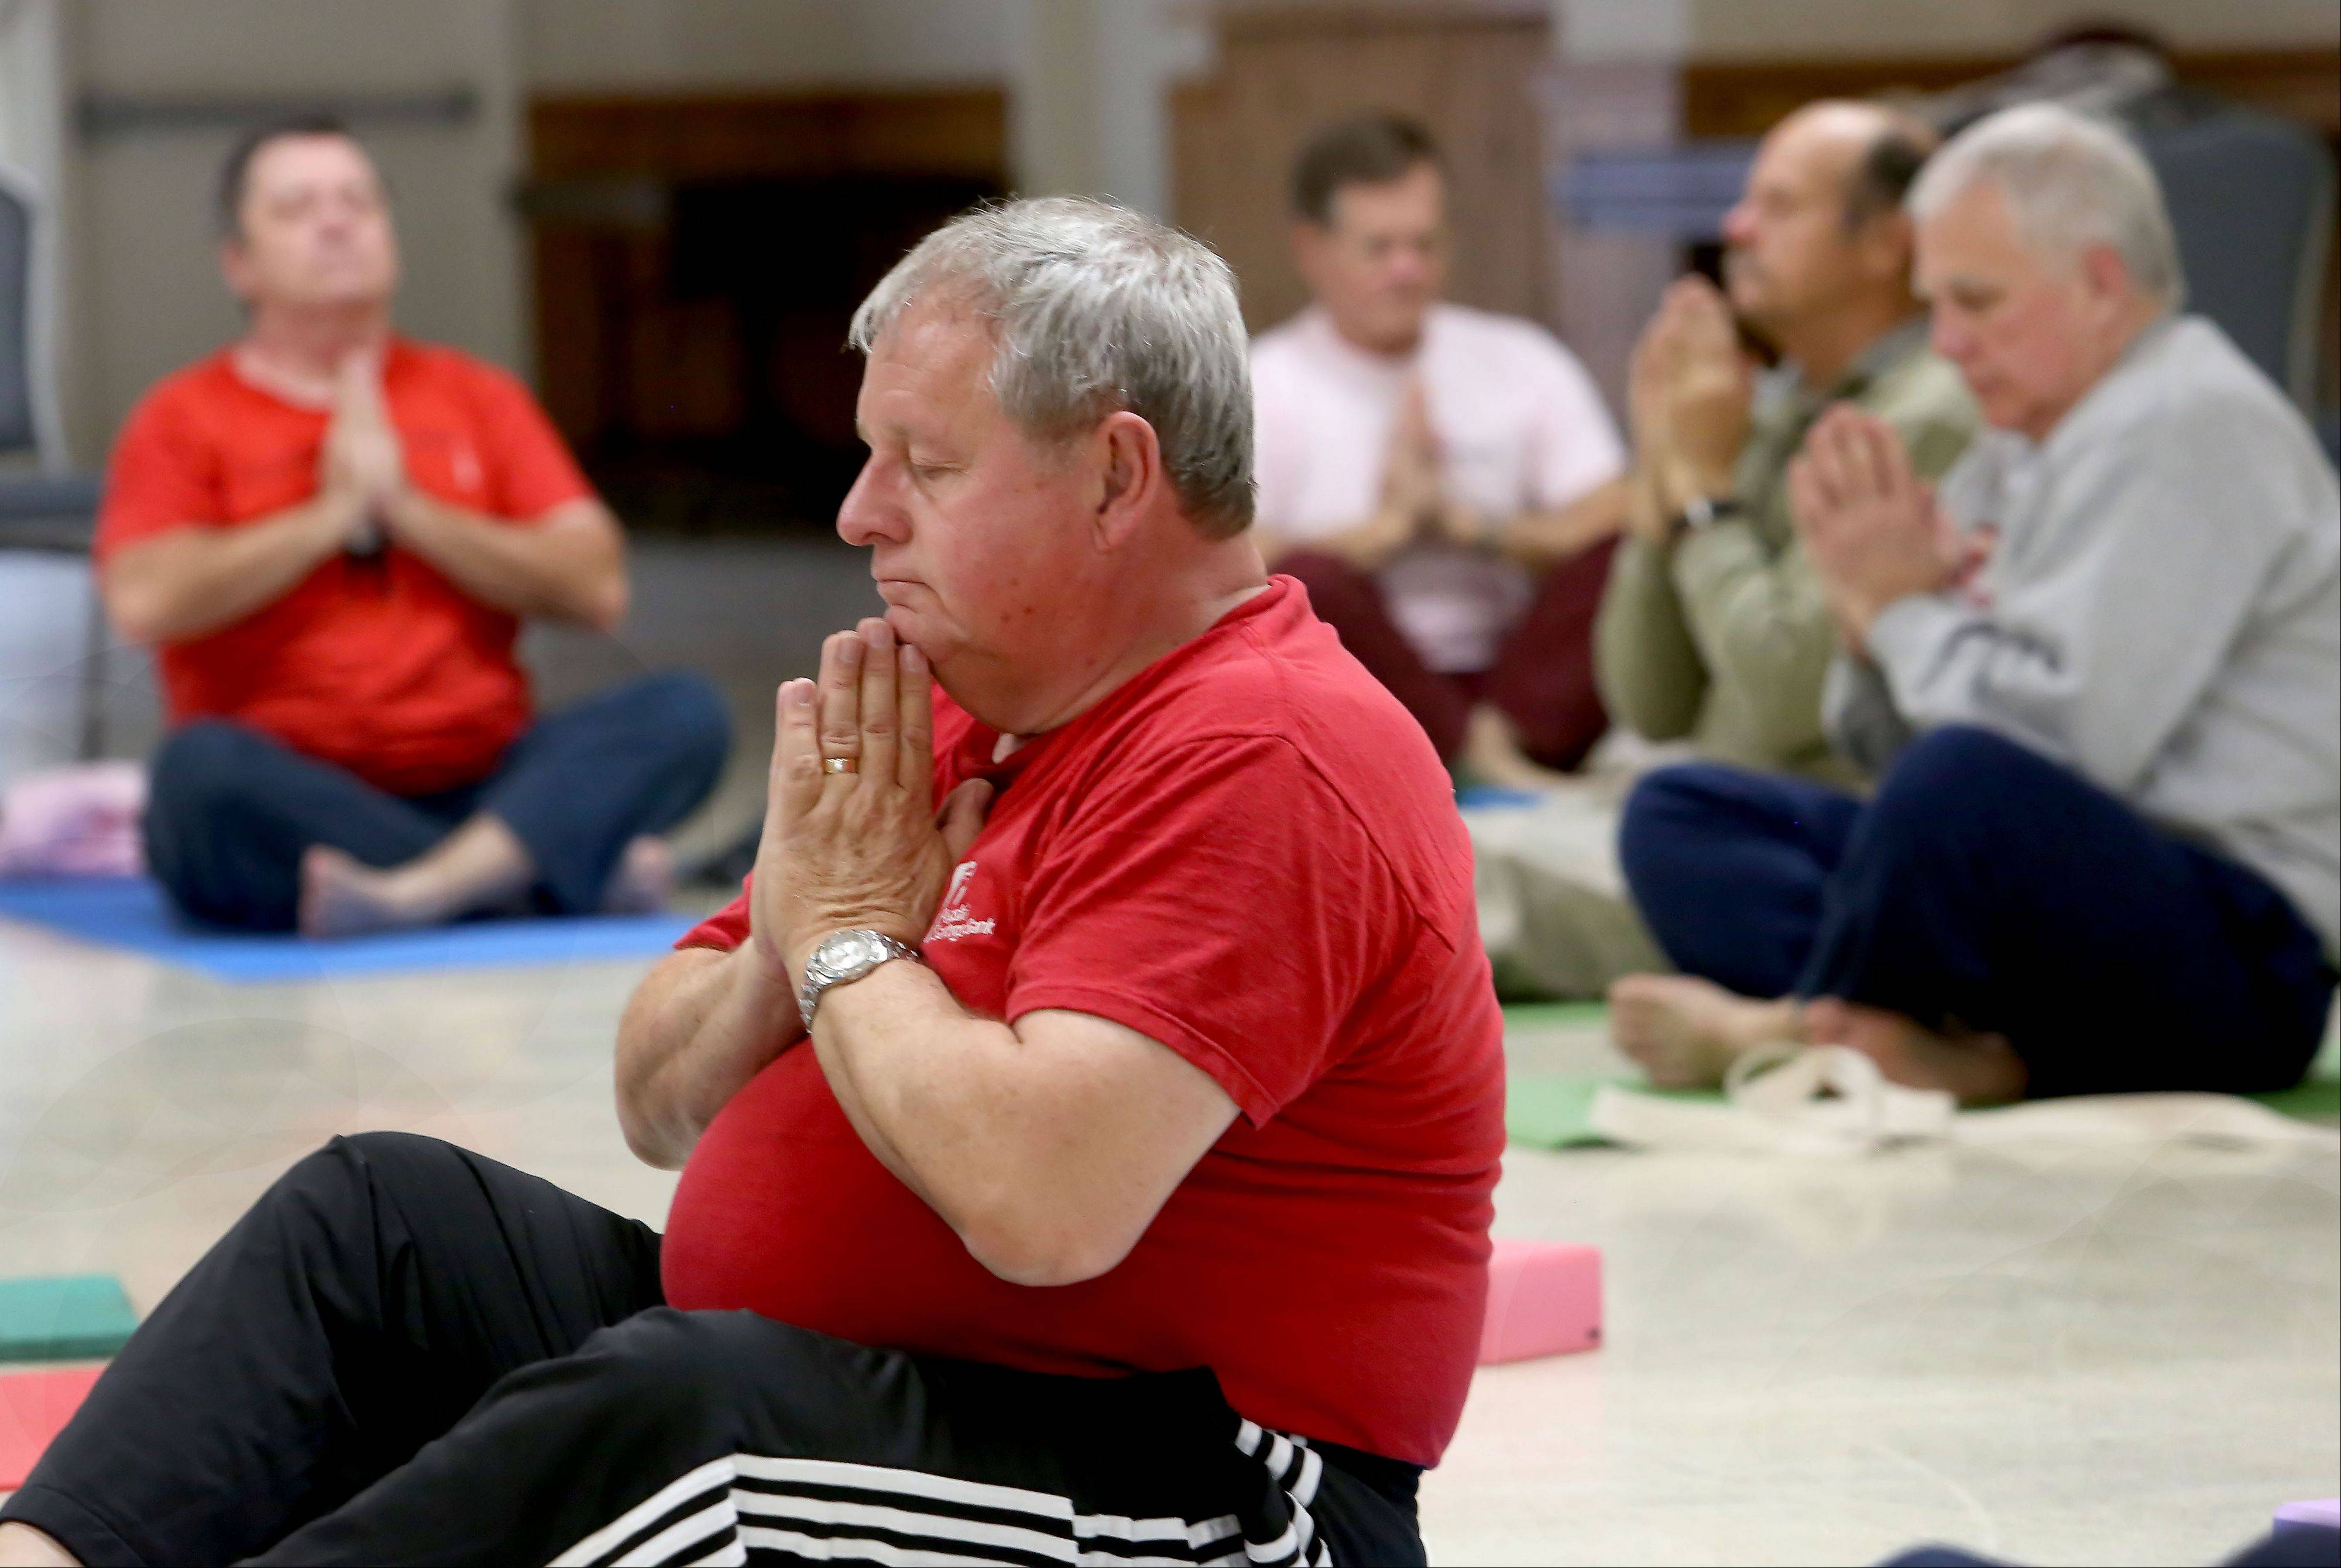 Roger Budny of Naperville relaxes during a yoga class for veterans at Judd Kendall VFW Post 3873 in Naperville. Volunteer instructor Dana Fish recently started offering yoga for veterans through Connected Warriors, a nonprofit organization that makes the physical and emotional benefits of yoga available to those who have served.